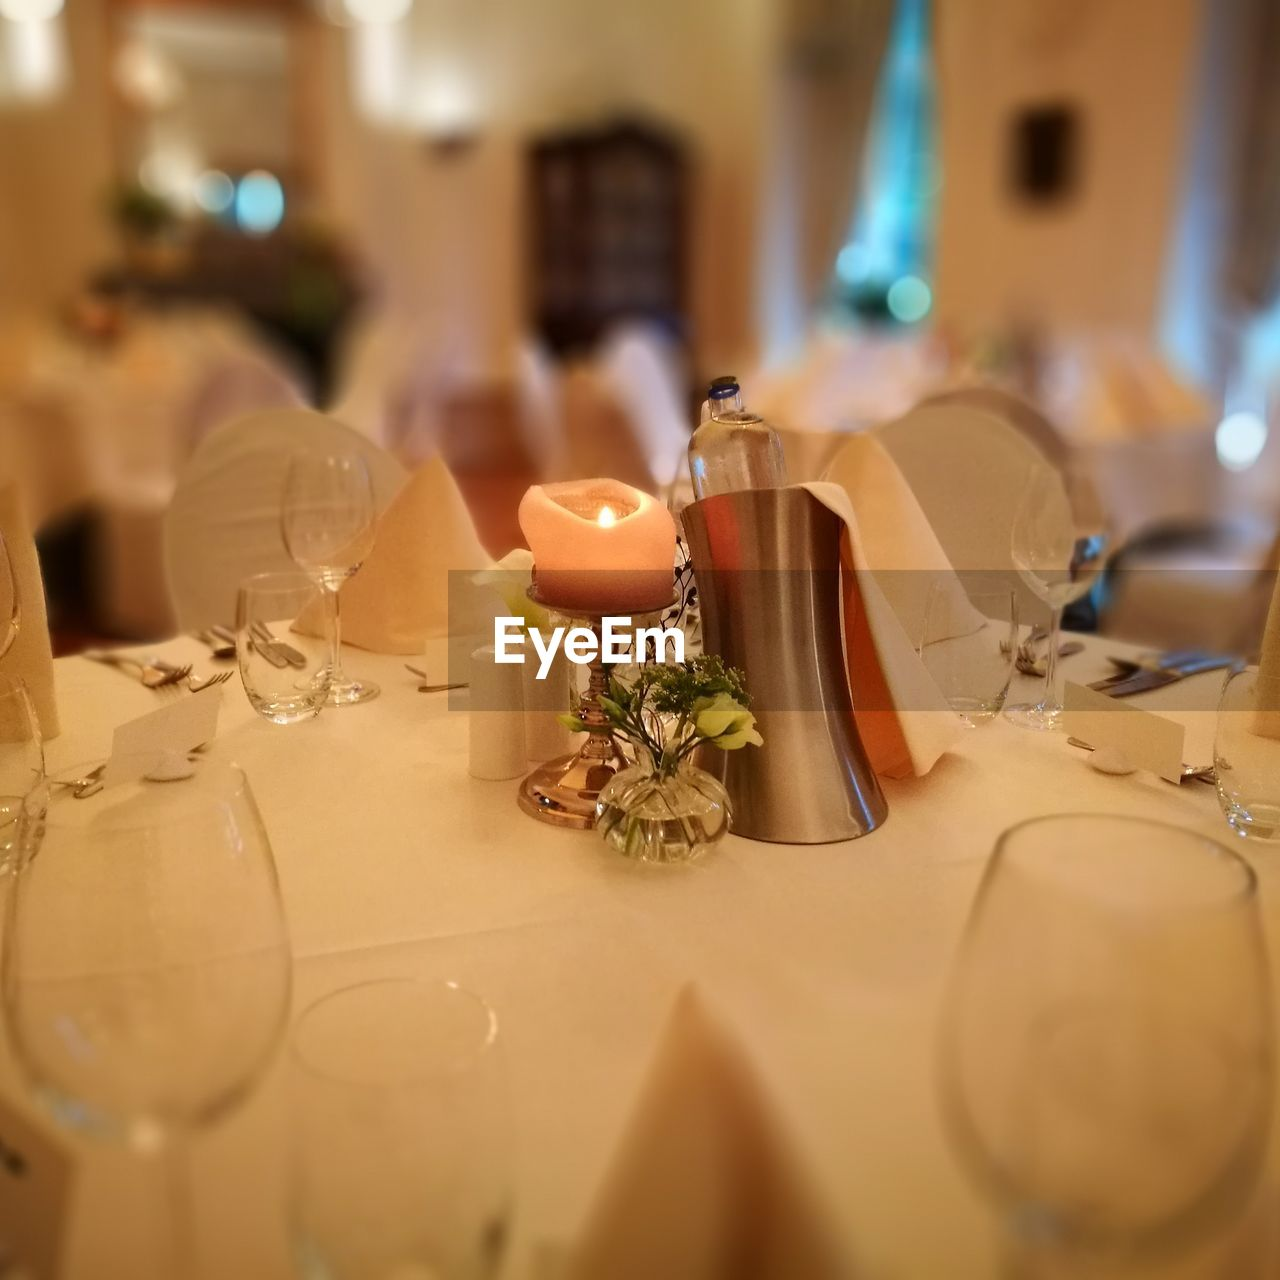 table, place setting, candle, plate, indoors, dining table, fork, restaurant, table knife, wineglass, wedding, celebration, napkin, food and drink, tea light, no people, drinking glass, centerpiece, close-up, tablecloth, food, illuminated, night, flower